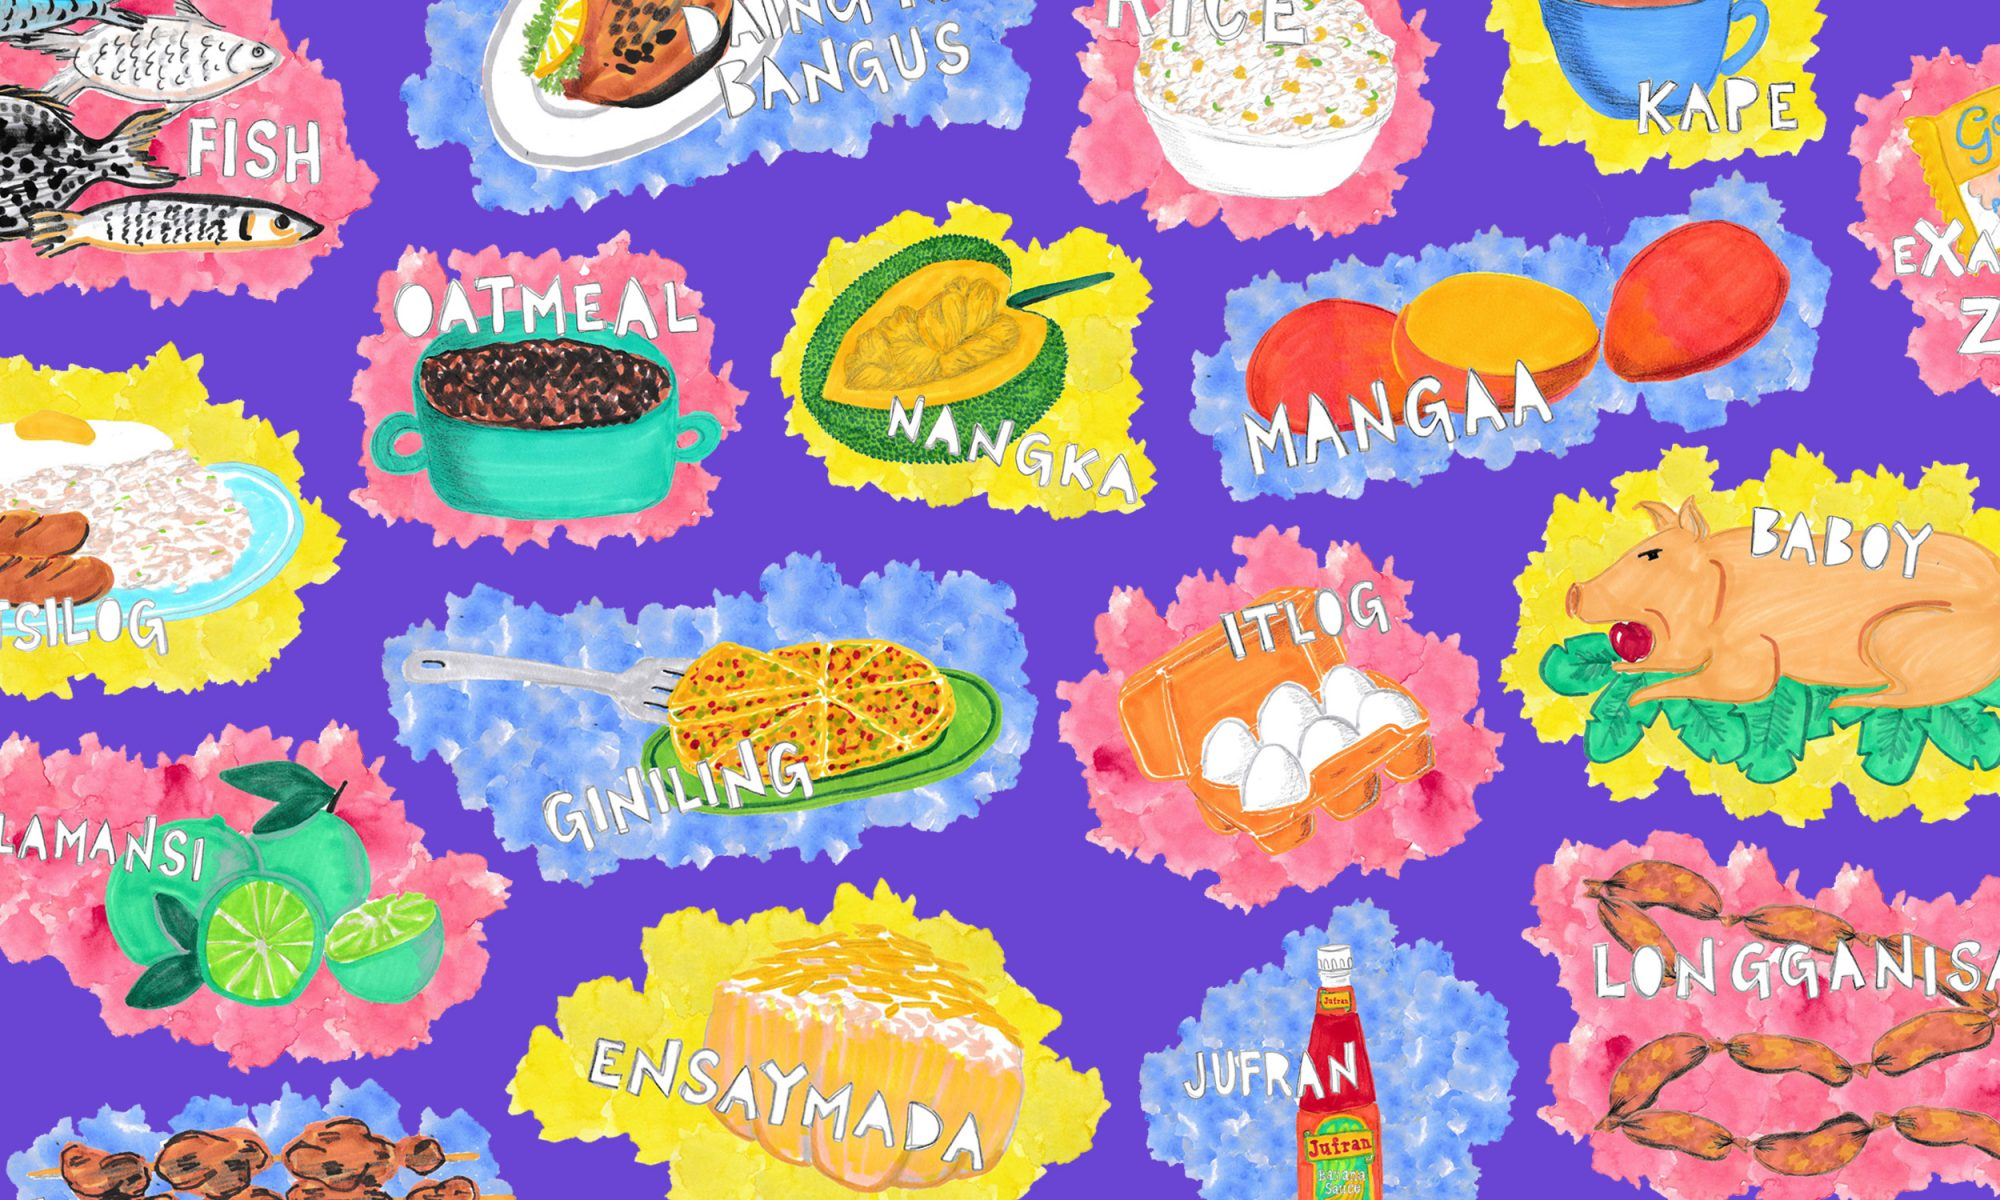 EC: An Illustrated Guide to Filipino Breakfast